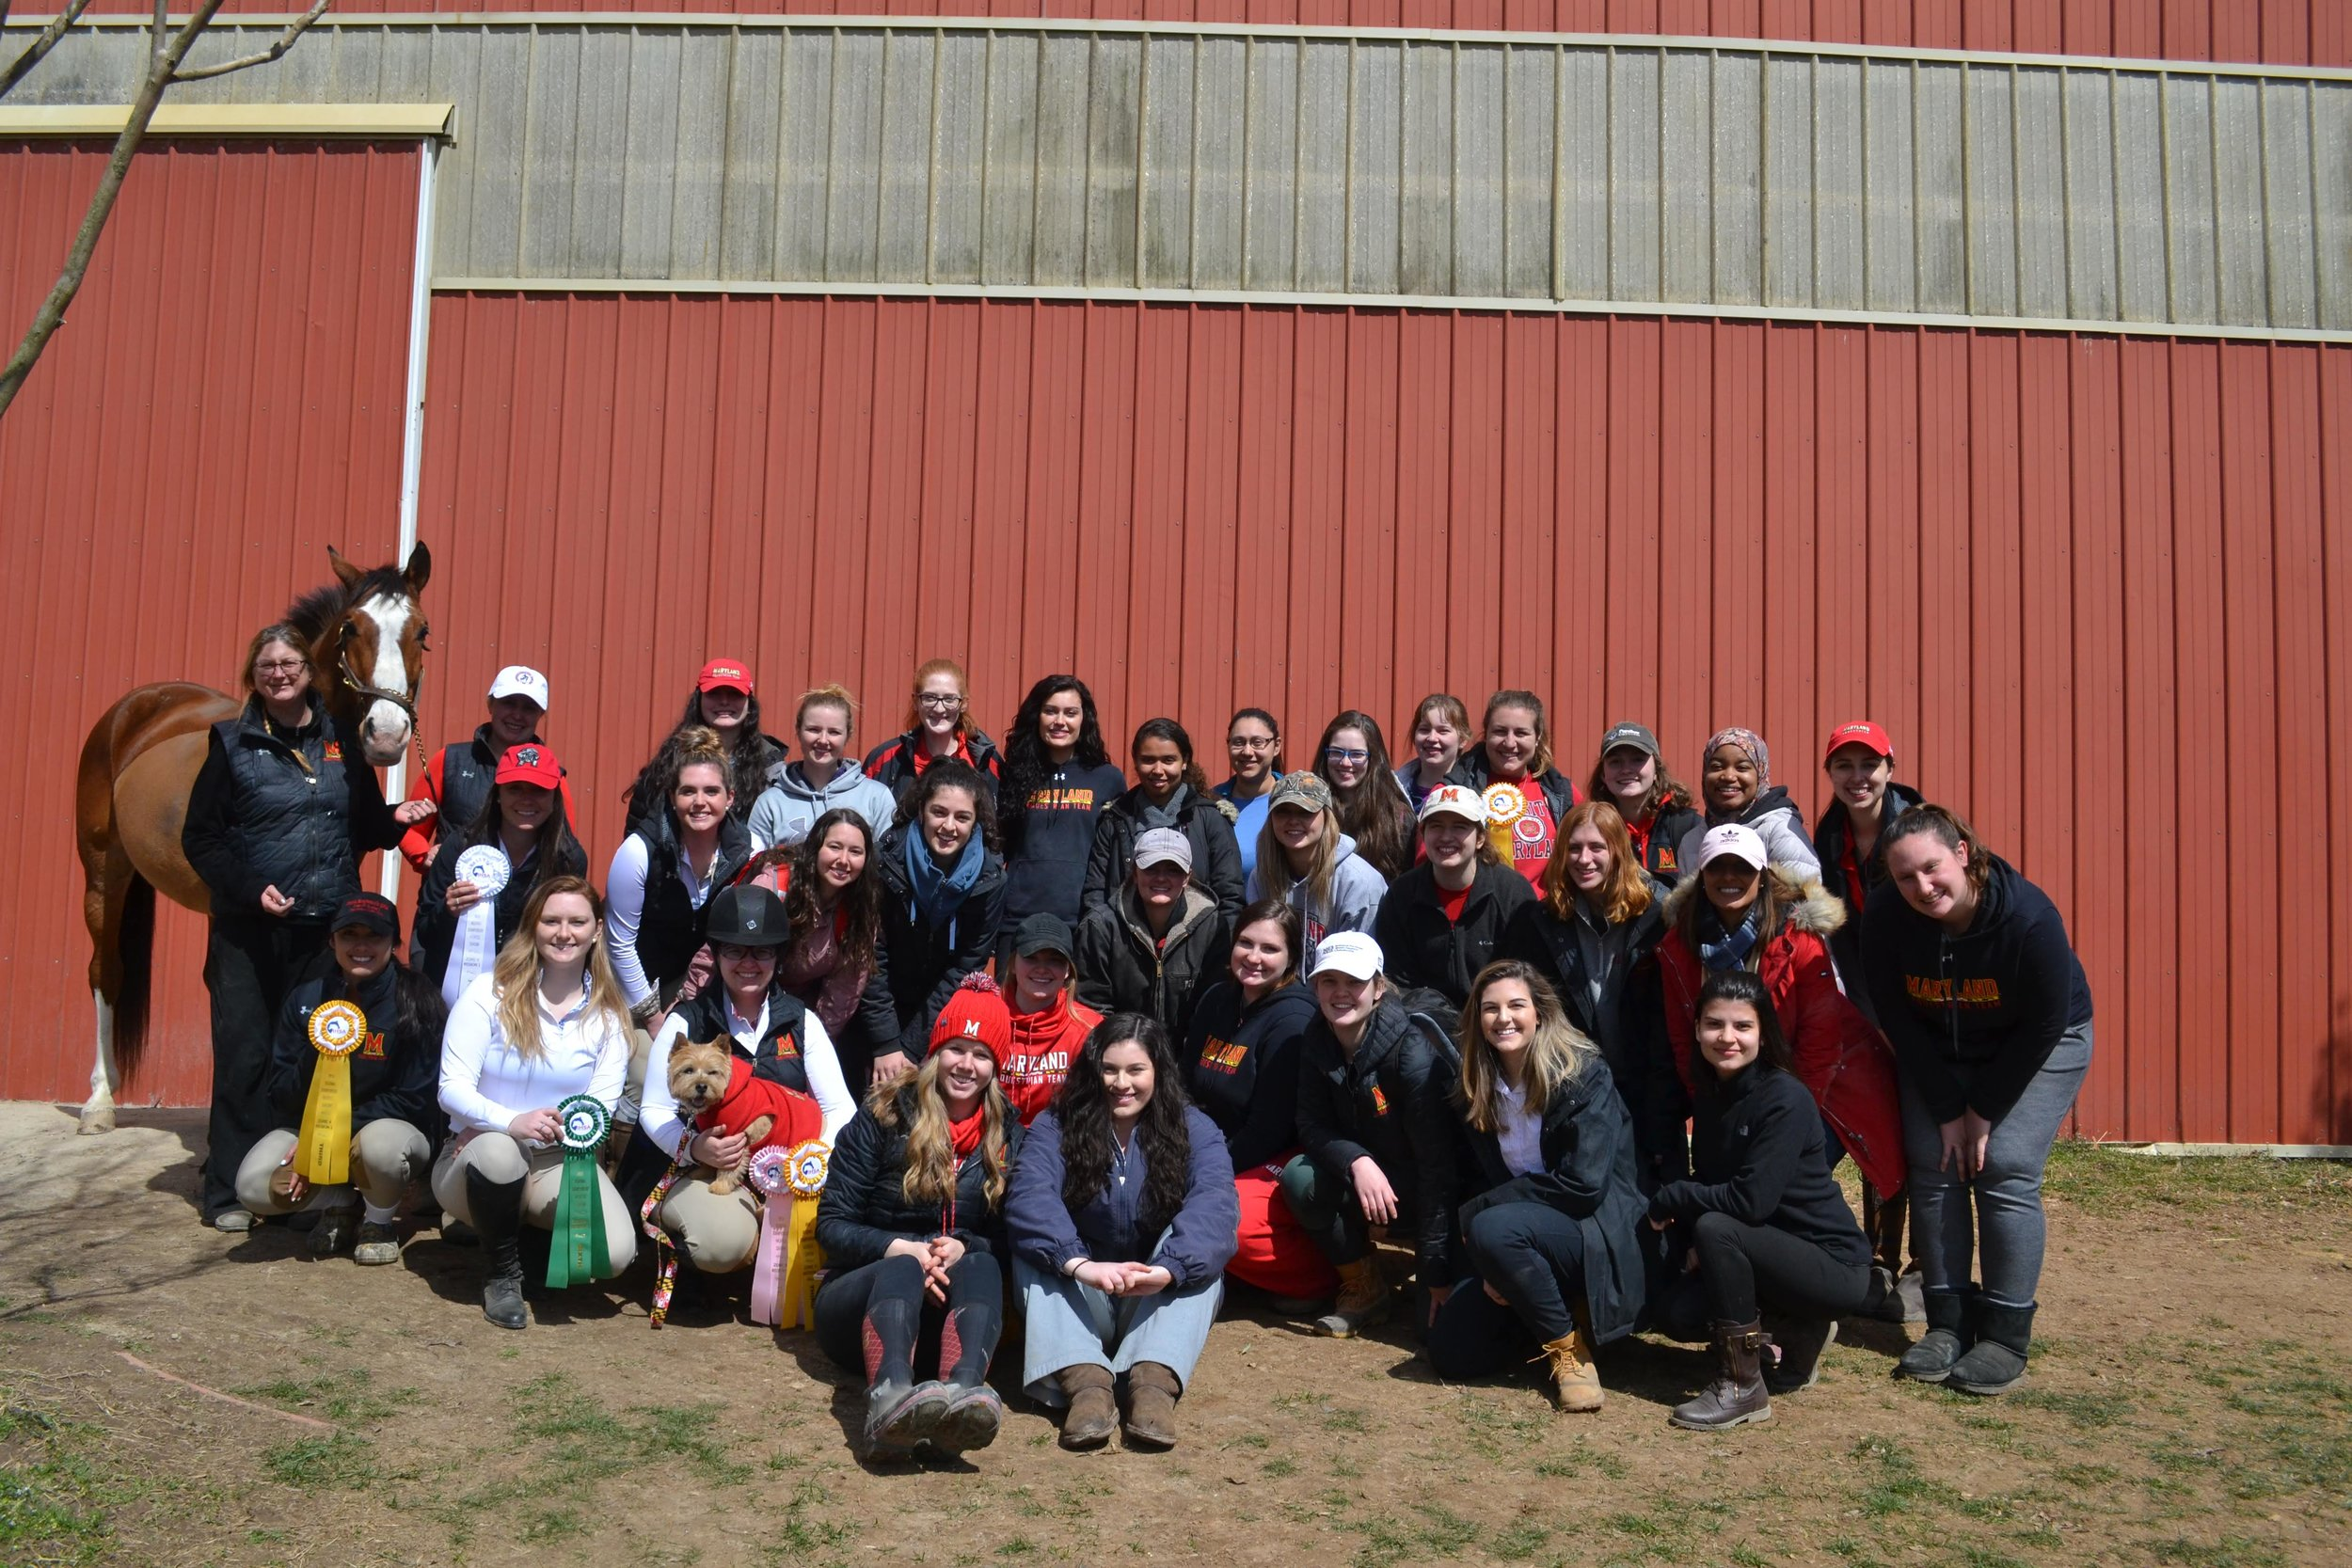 The University of Maryland Equestrian Team - University of MarylandPC: U of Maryland Equestrian Team